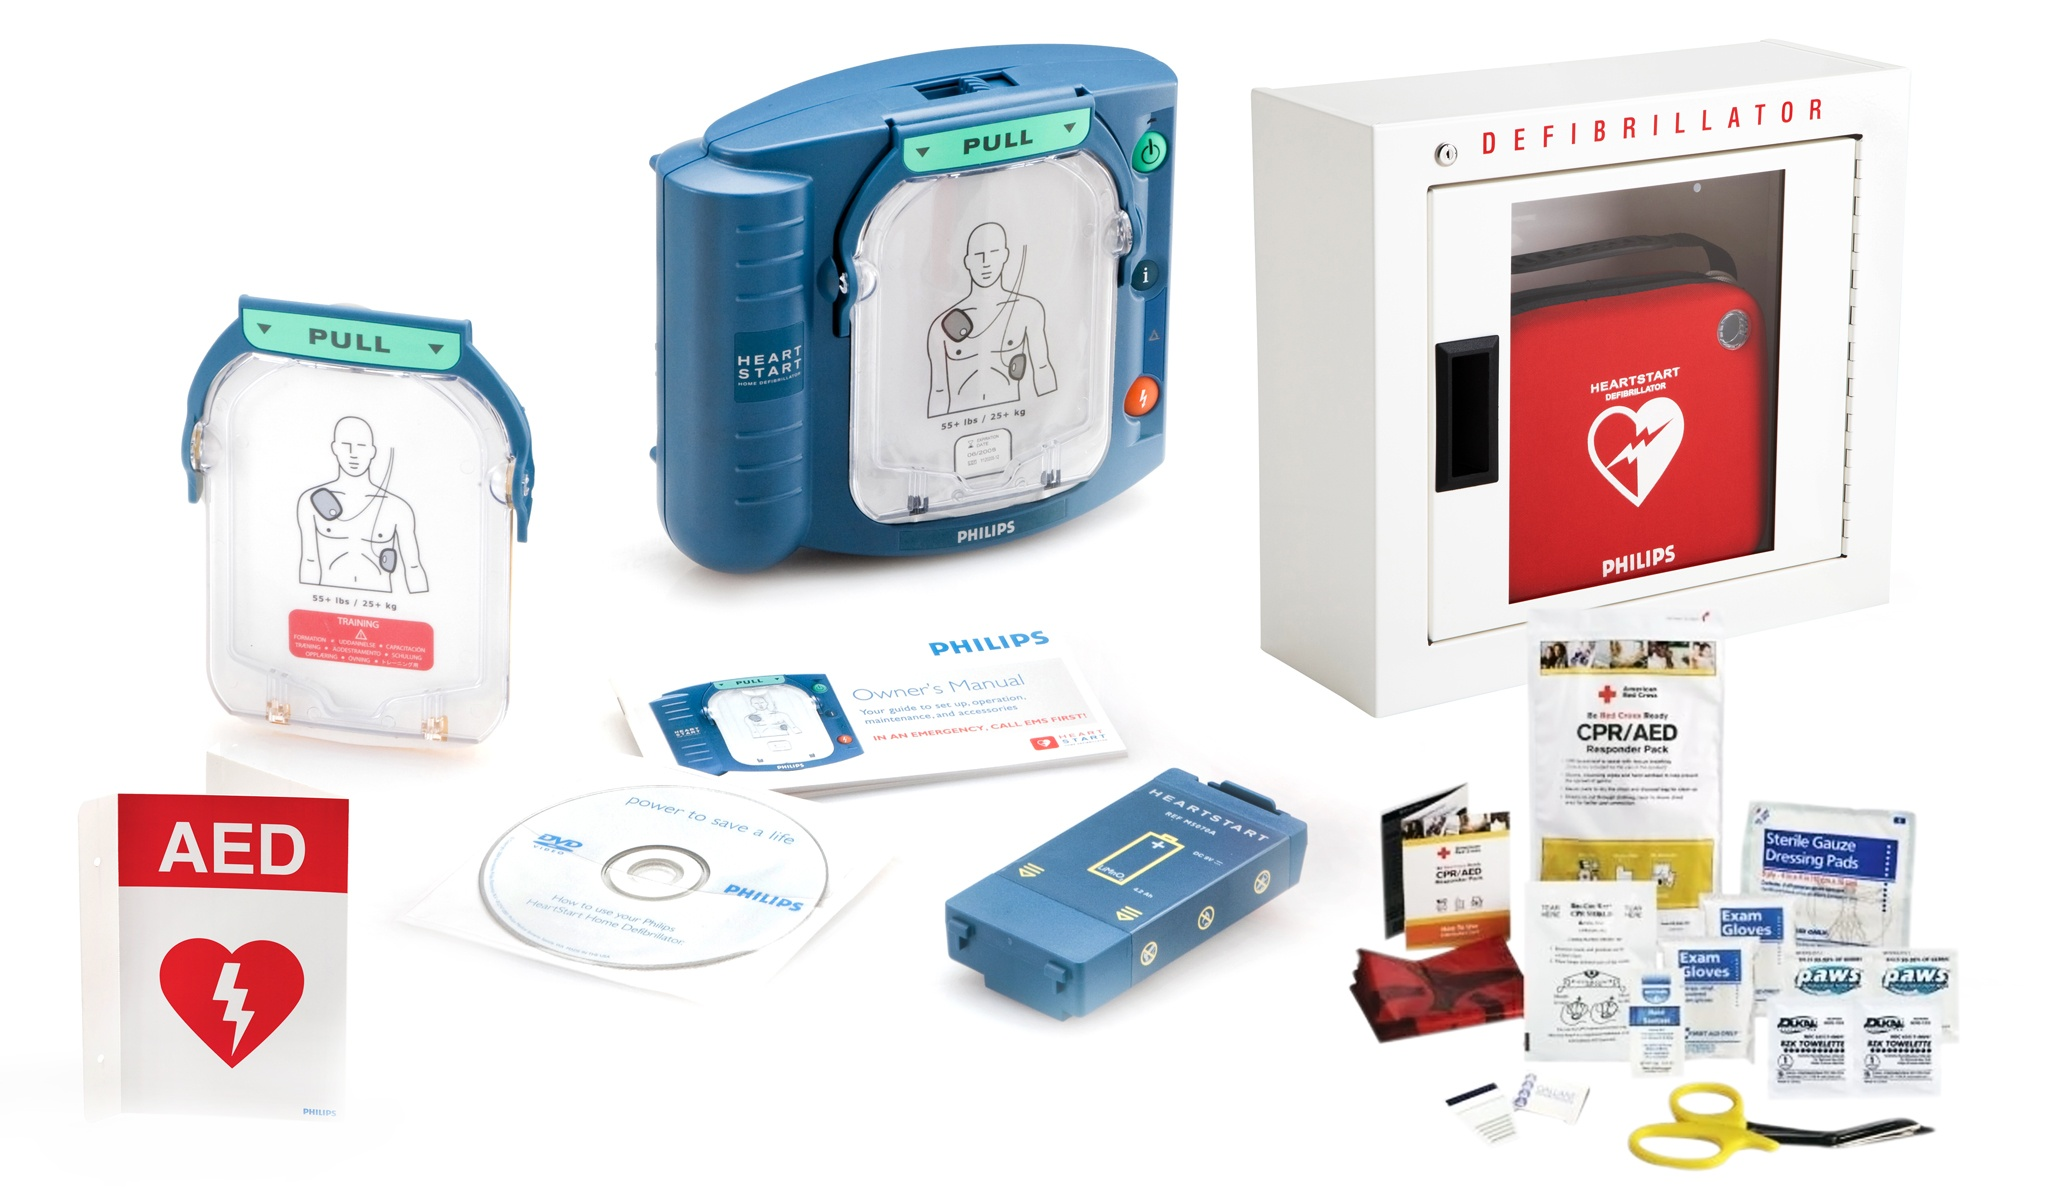 AED's making news and saving lives...AGAIN!